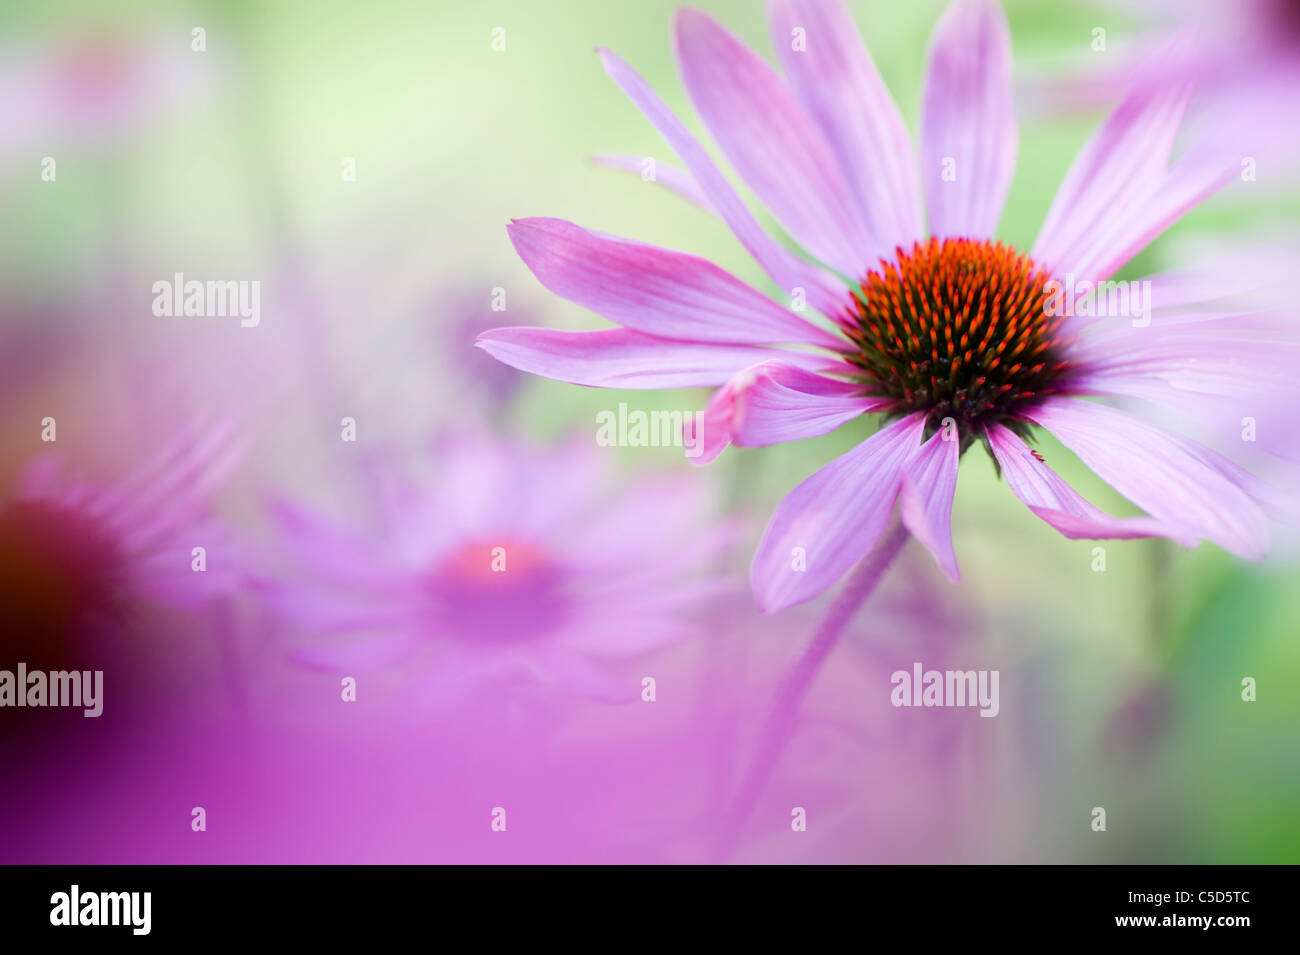 Close-up image of Echinacea purpurea (Eastern purple coneflowers or Purple coneflower) pink summer flowers, taken - Stock Image